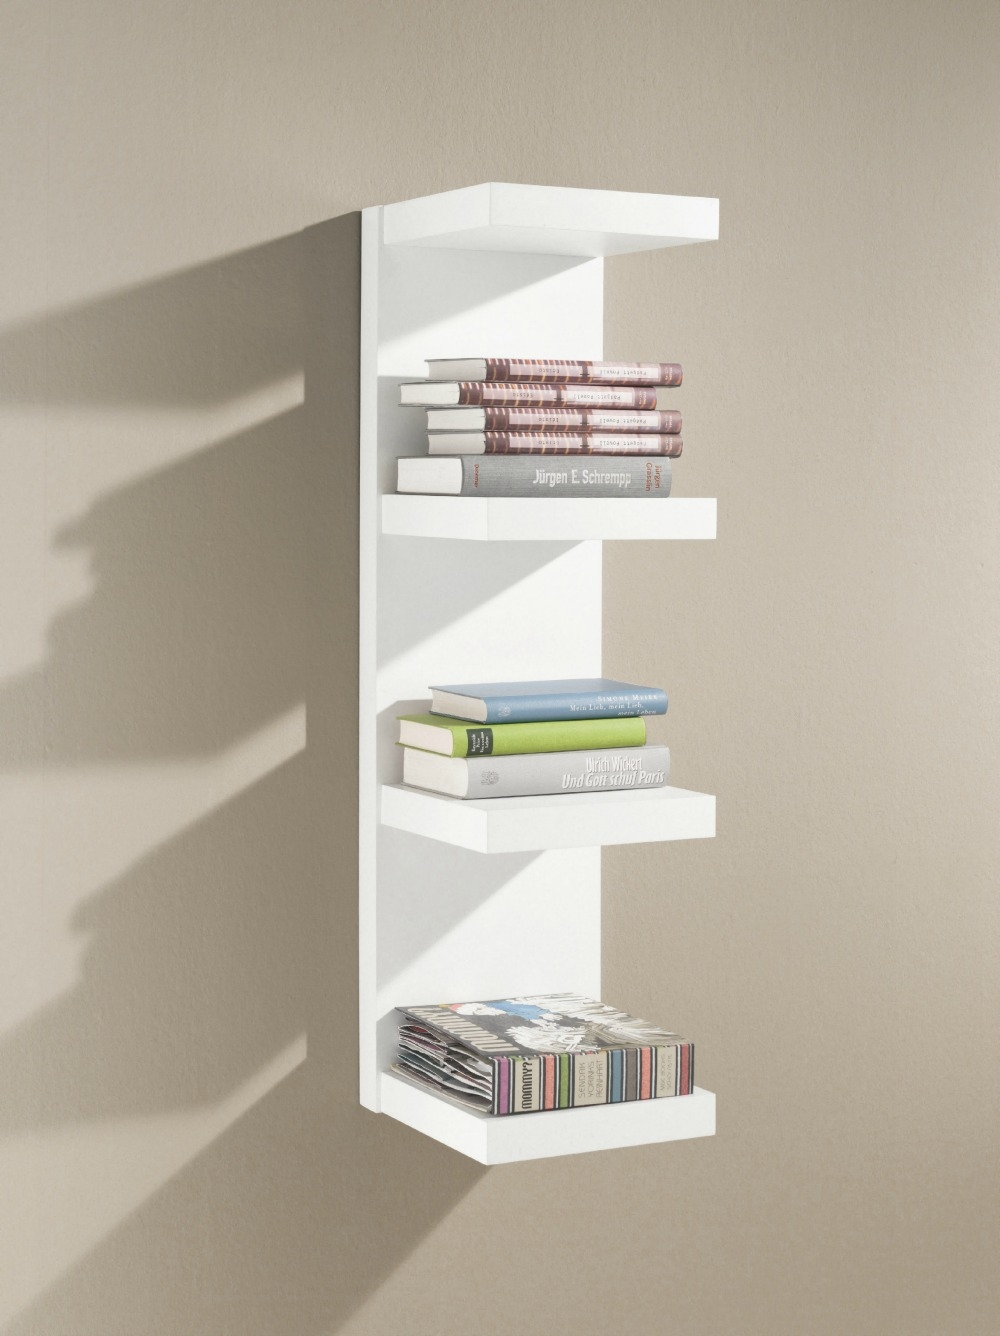 Floating Shelves Floating Wall Shelves In Great Variety Of Sizes With Regard To Floating Wall Shelves (#5 of 12)